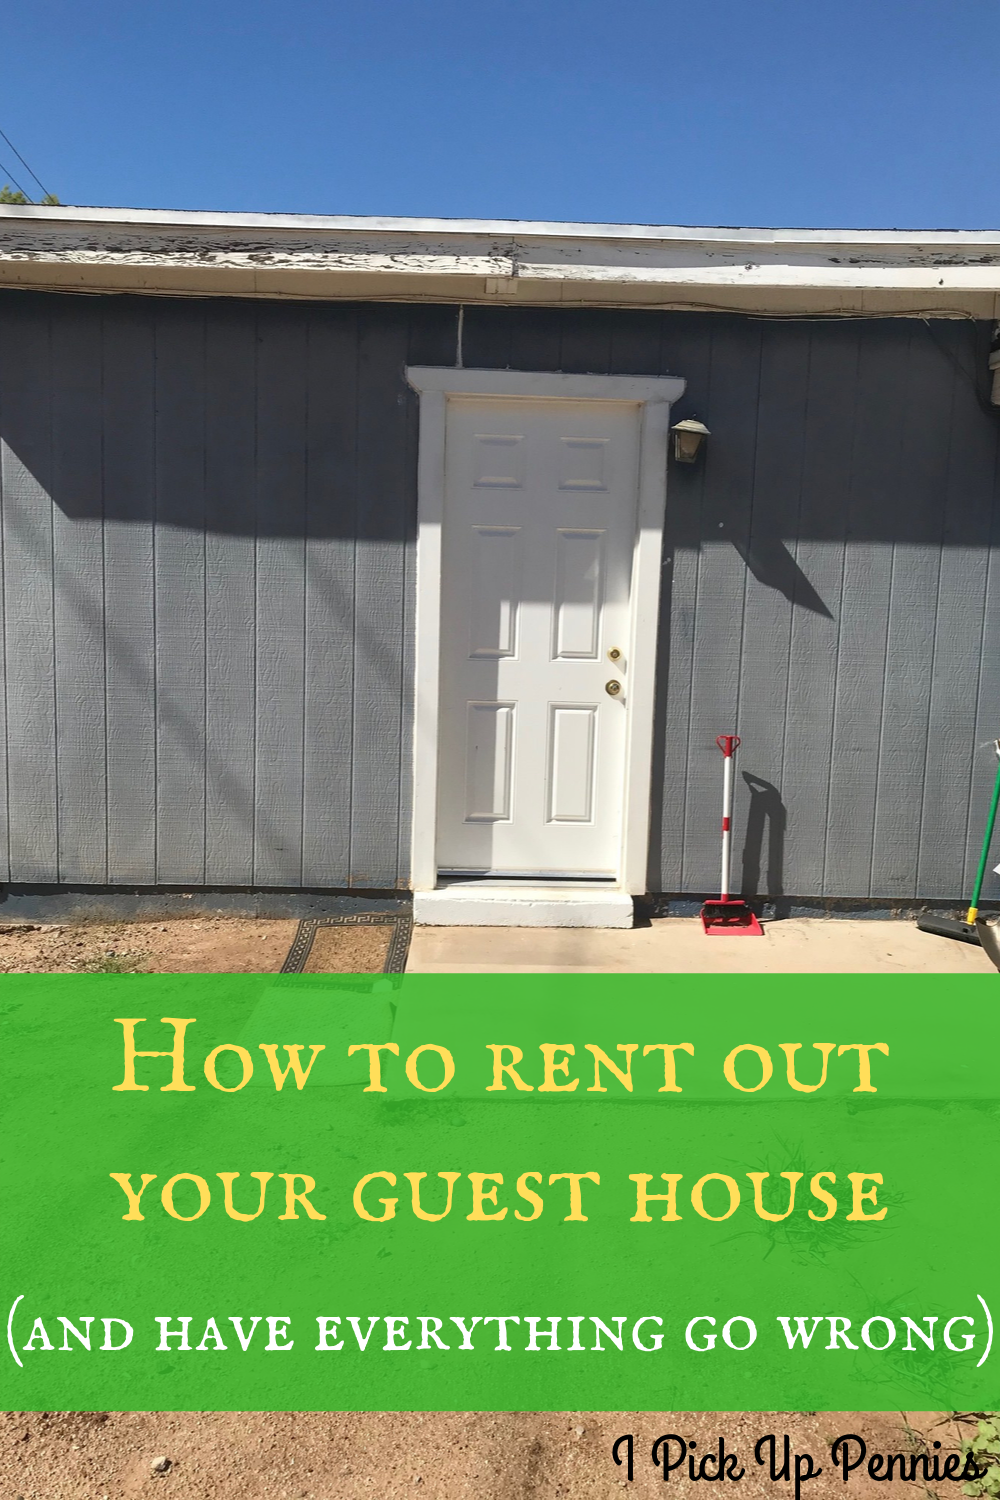 How to rent out a guest house (plus some debacles!) #landlord